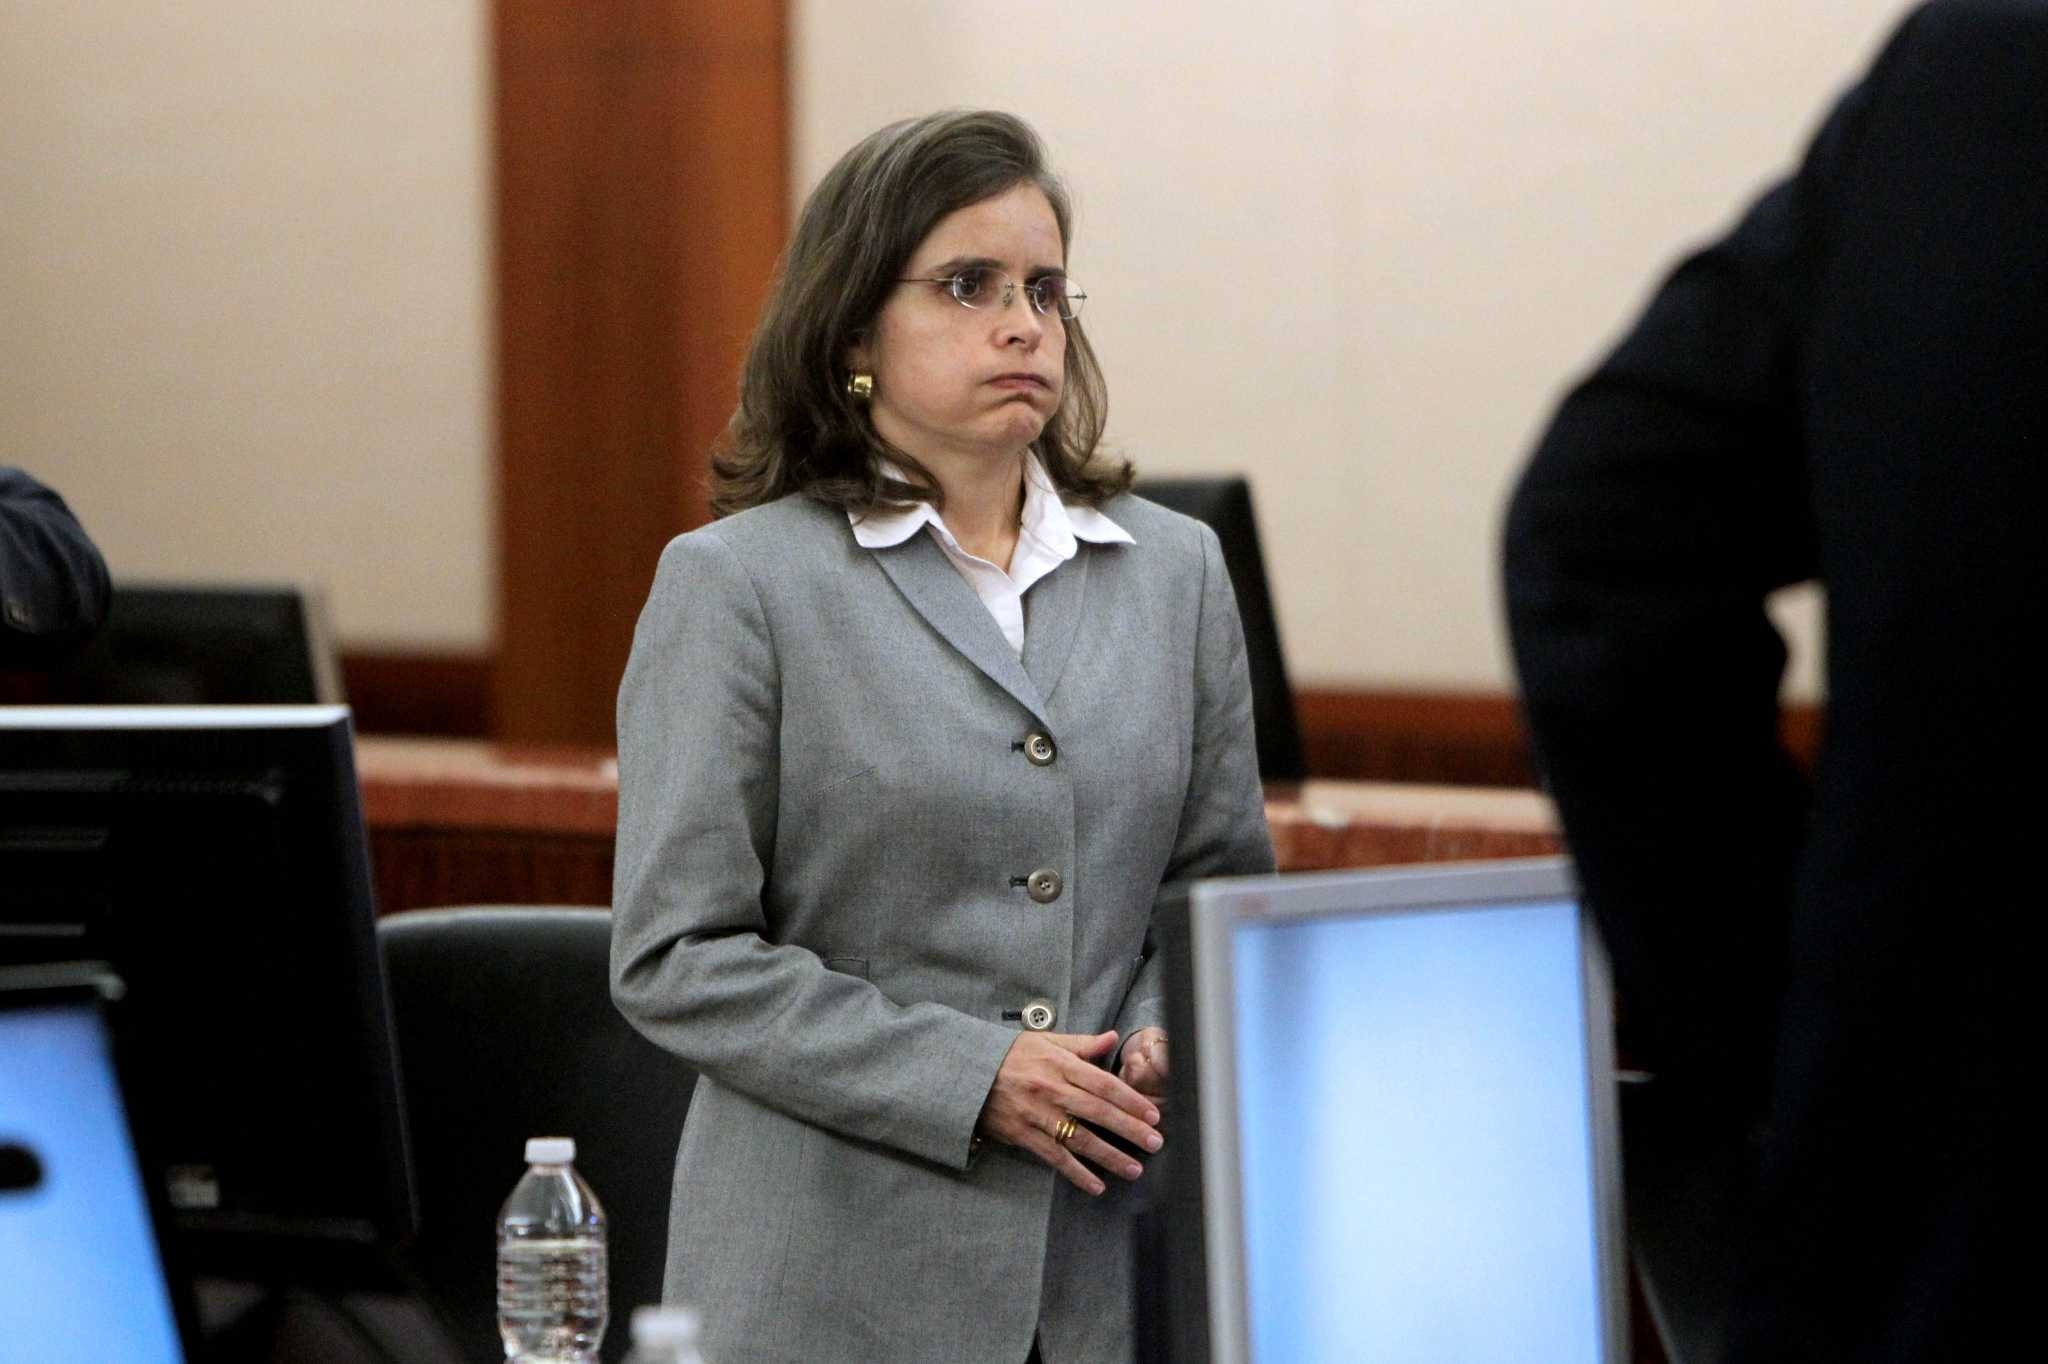 Jurors hear of attack on doctor accused of poisoning - Chron.com